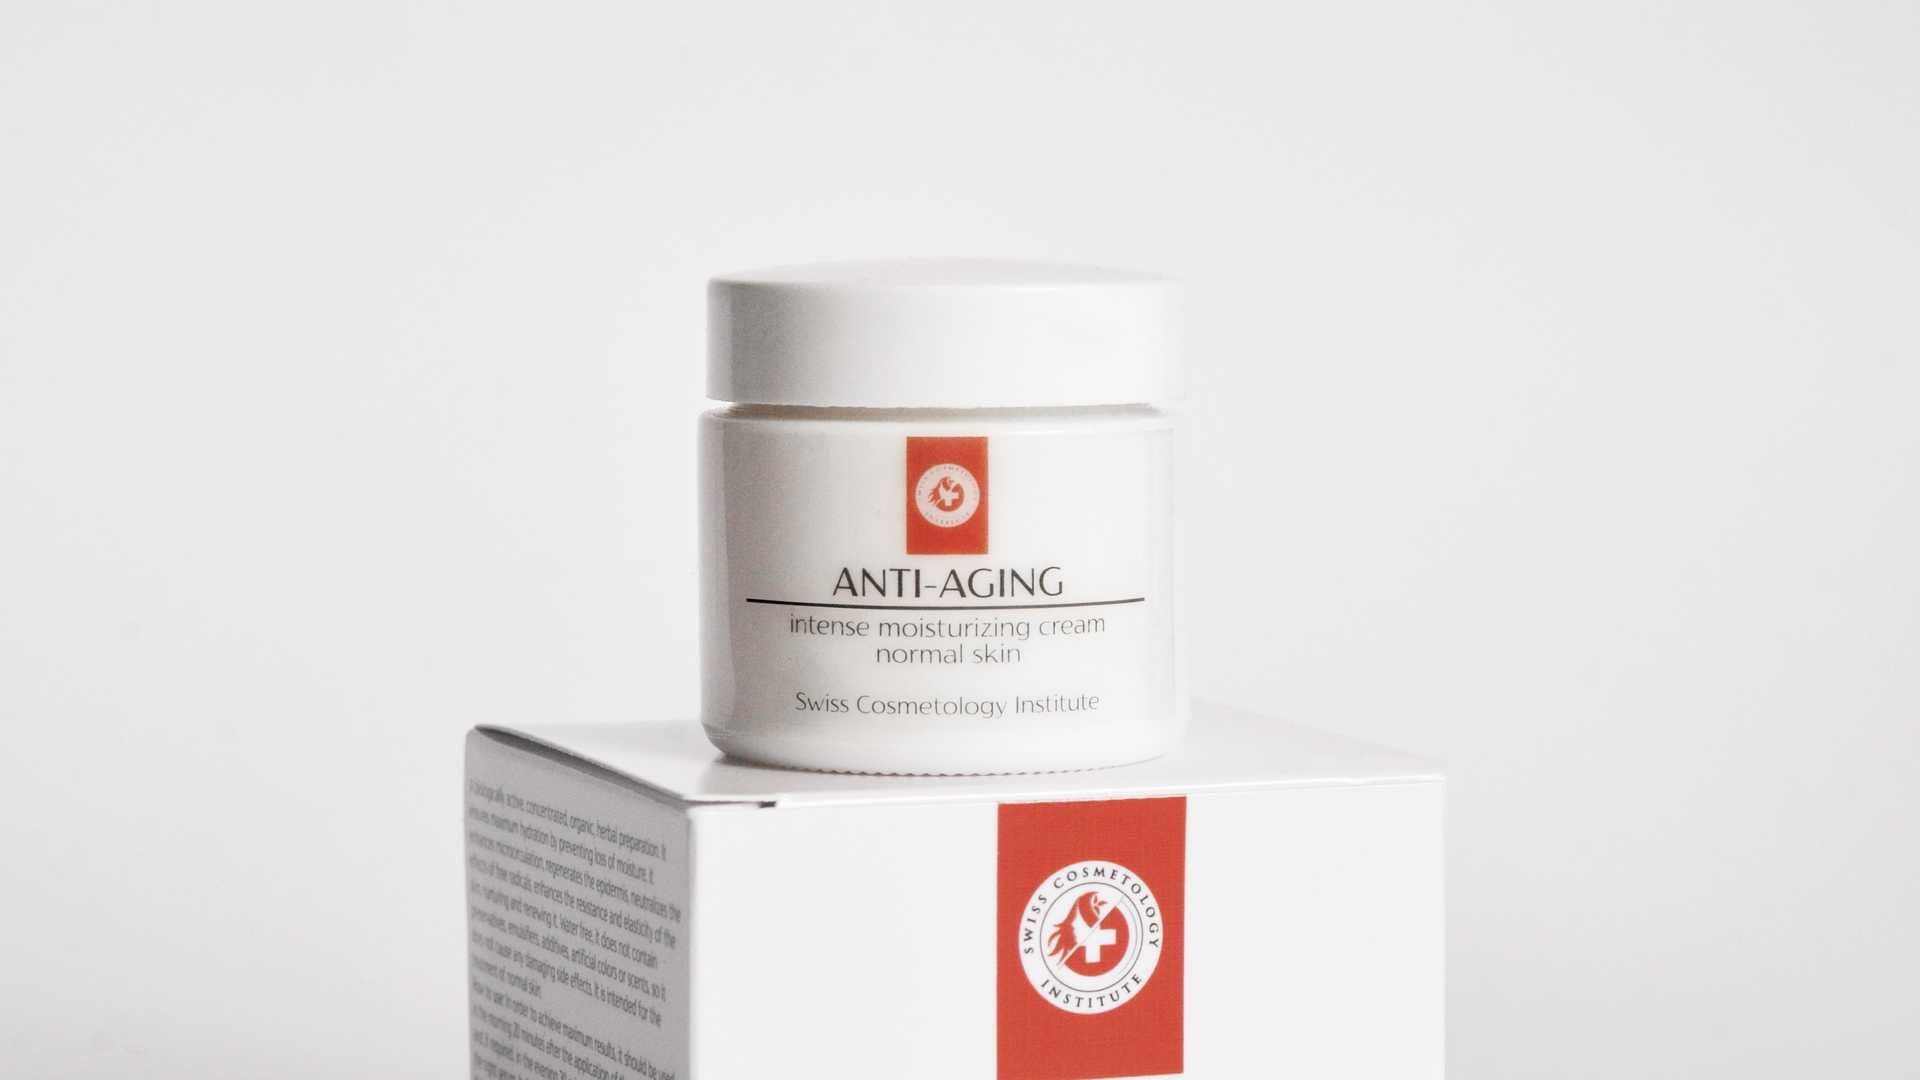 07. Intense moisturizing cream NORMAL SKIN